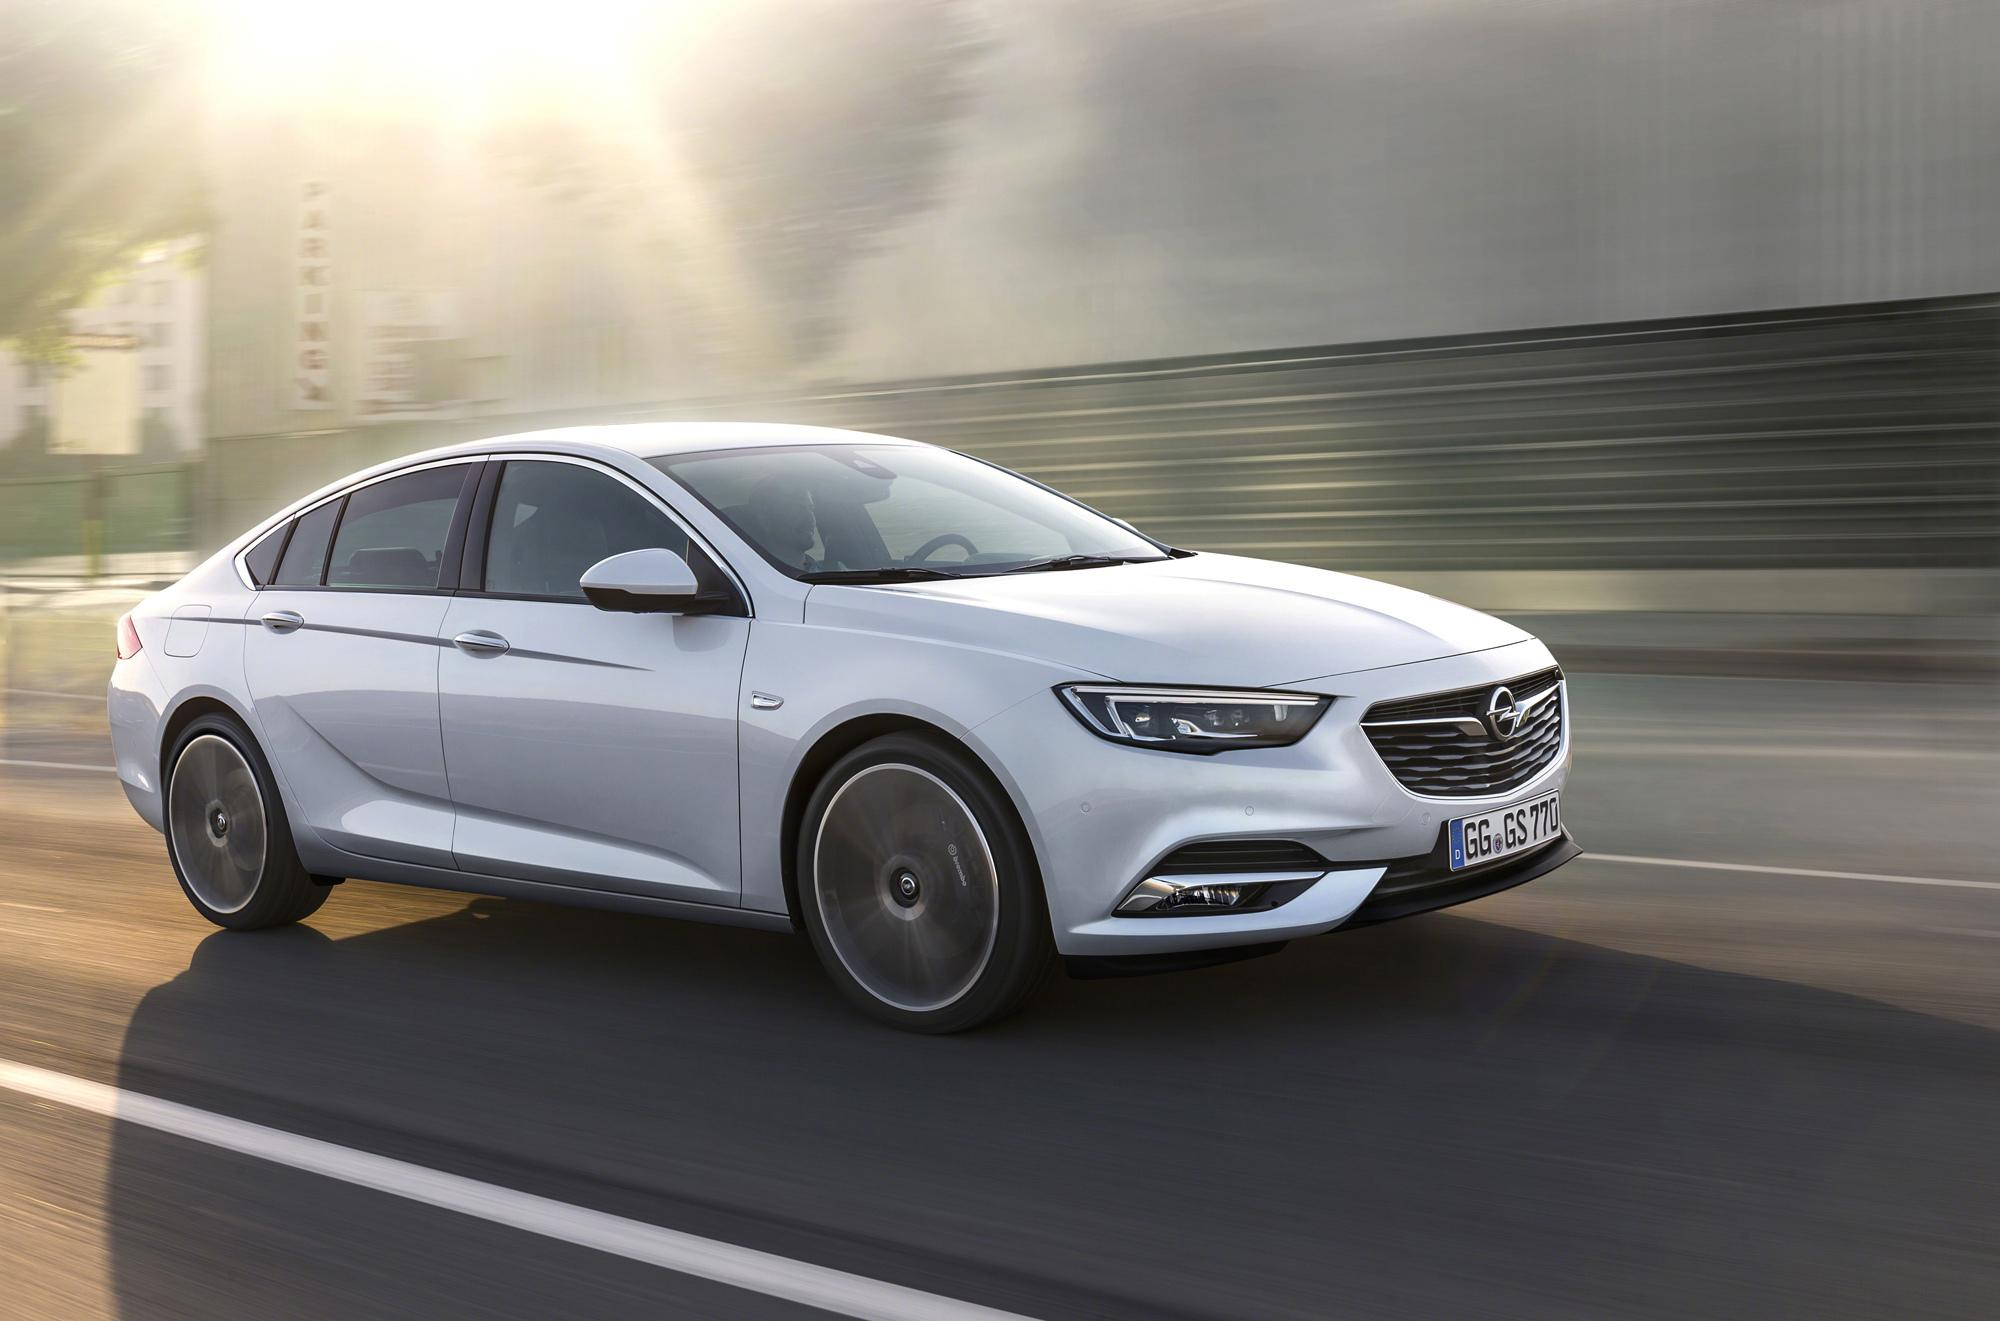 Opel Insignia Wallpapers HD Photos, Wallpapers and other Image